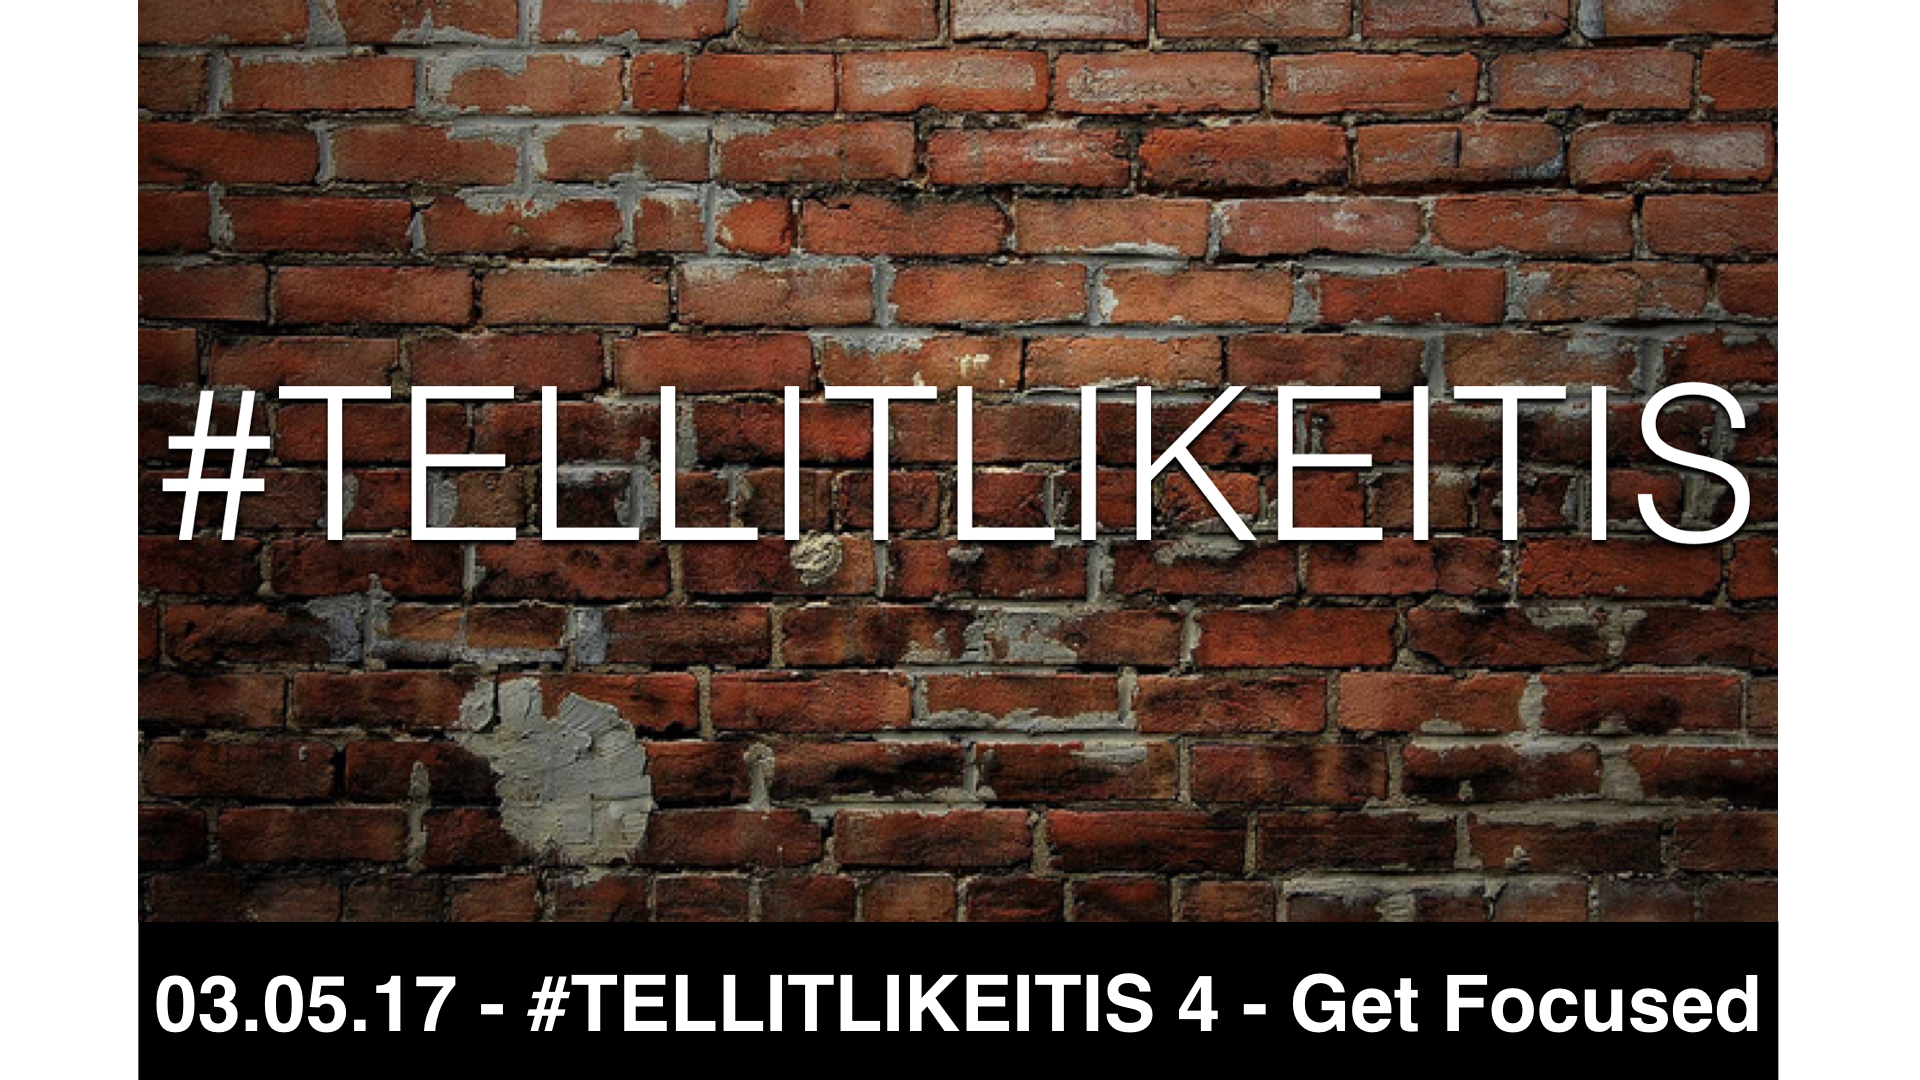 03-05-17 - #TELLITLIKEITIS - Get Focused